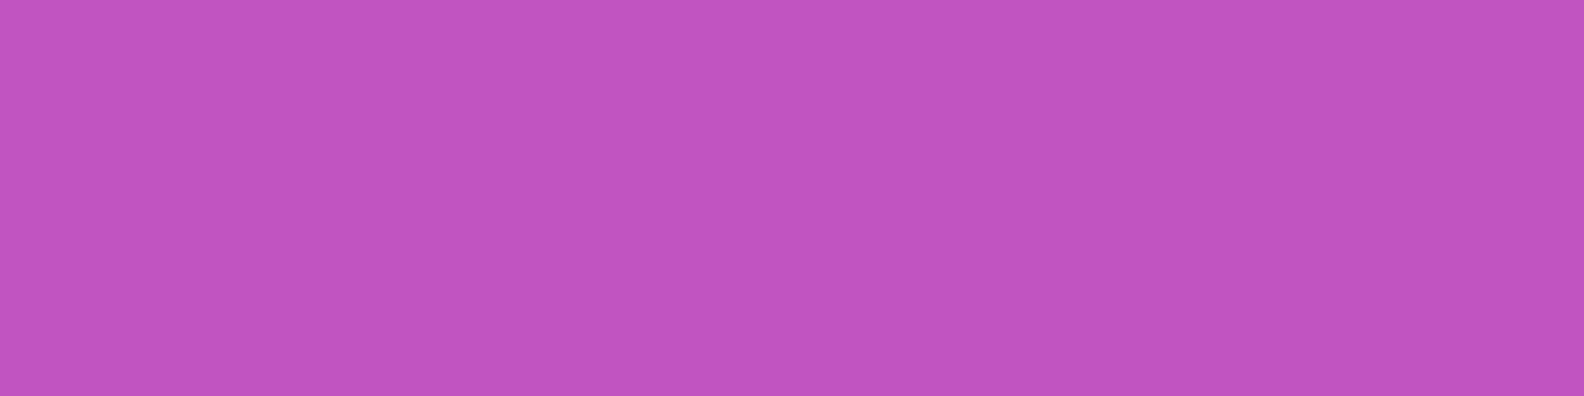 1584x396 Deep Fuchsia Solid Color Background